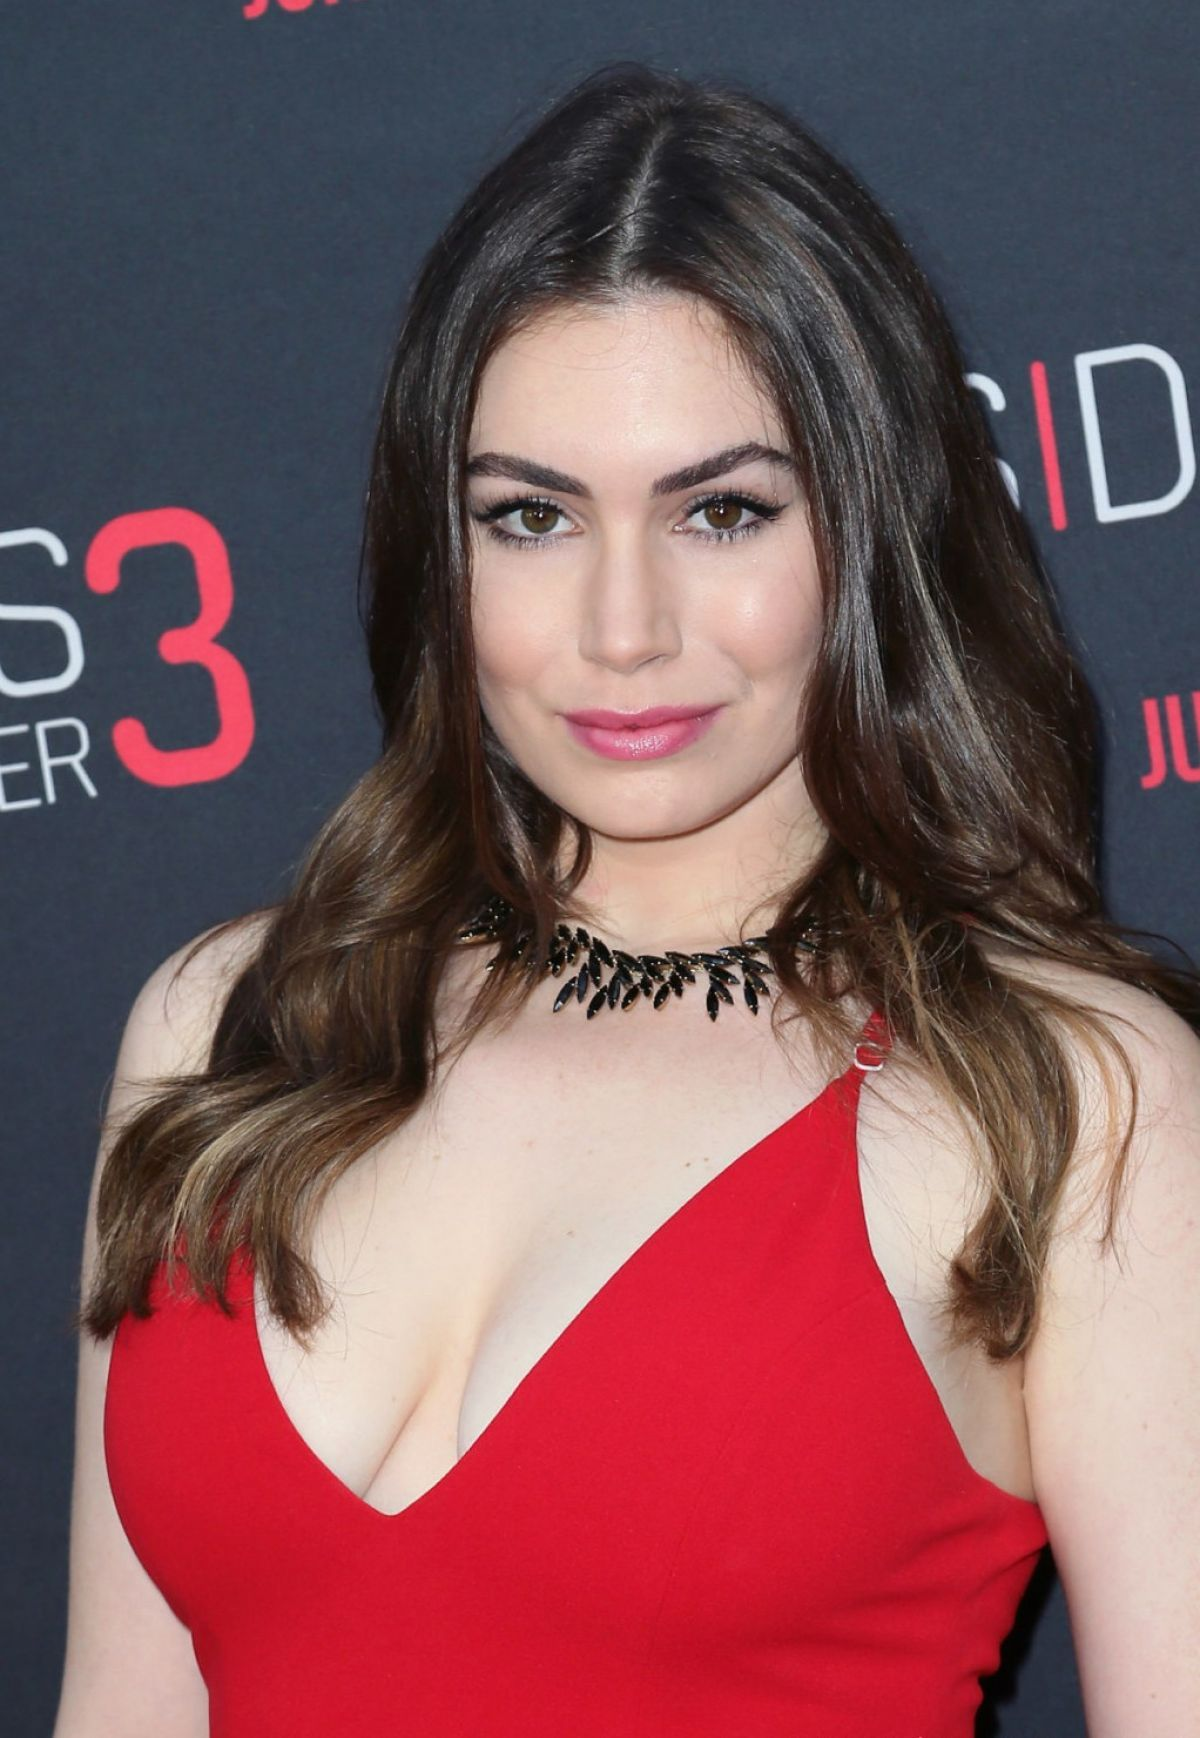 sophie simmons weight loss